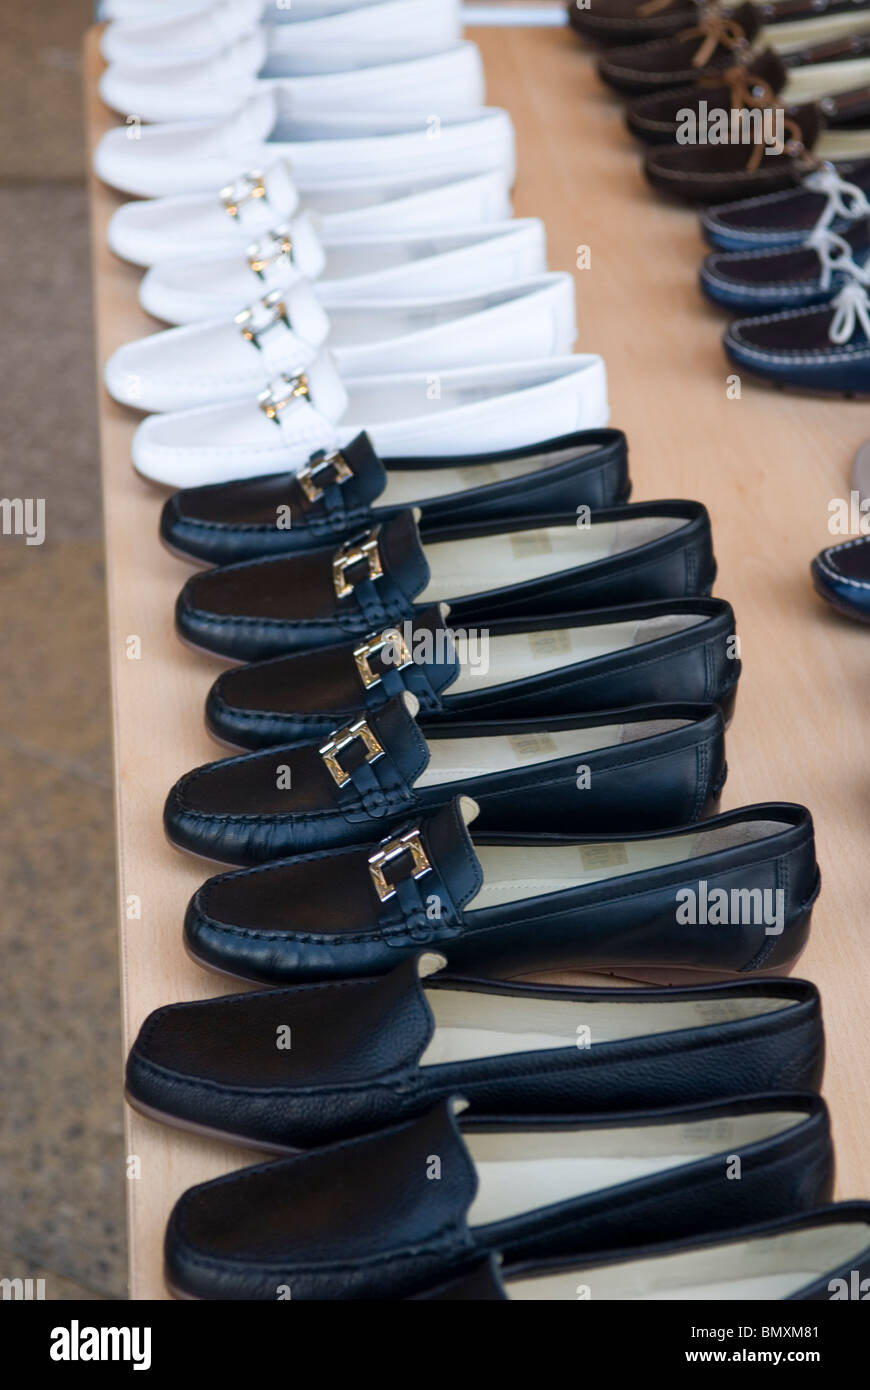 Shoes on sale at a stall Berlin Germany - Stock Image